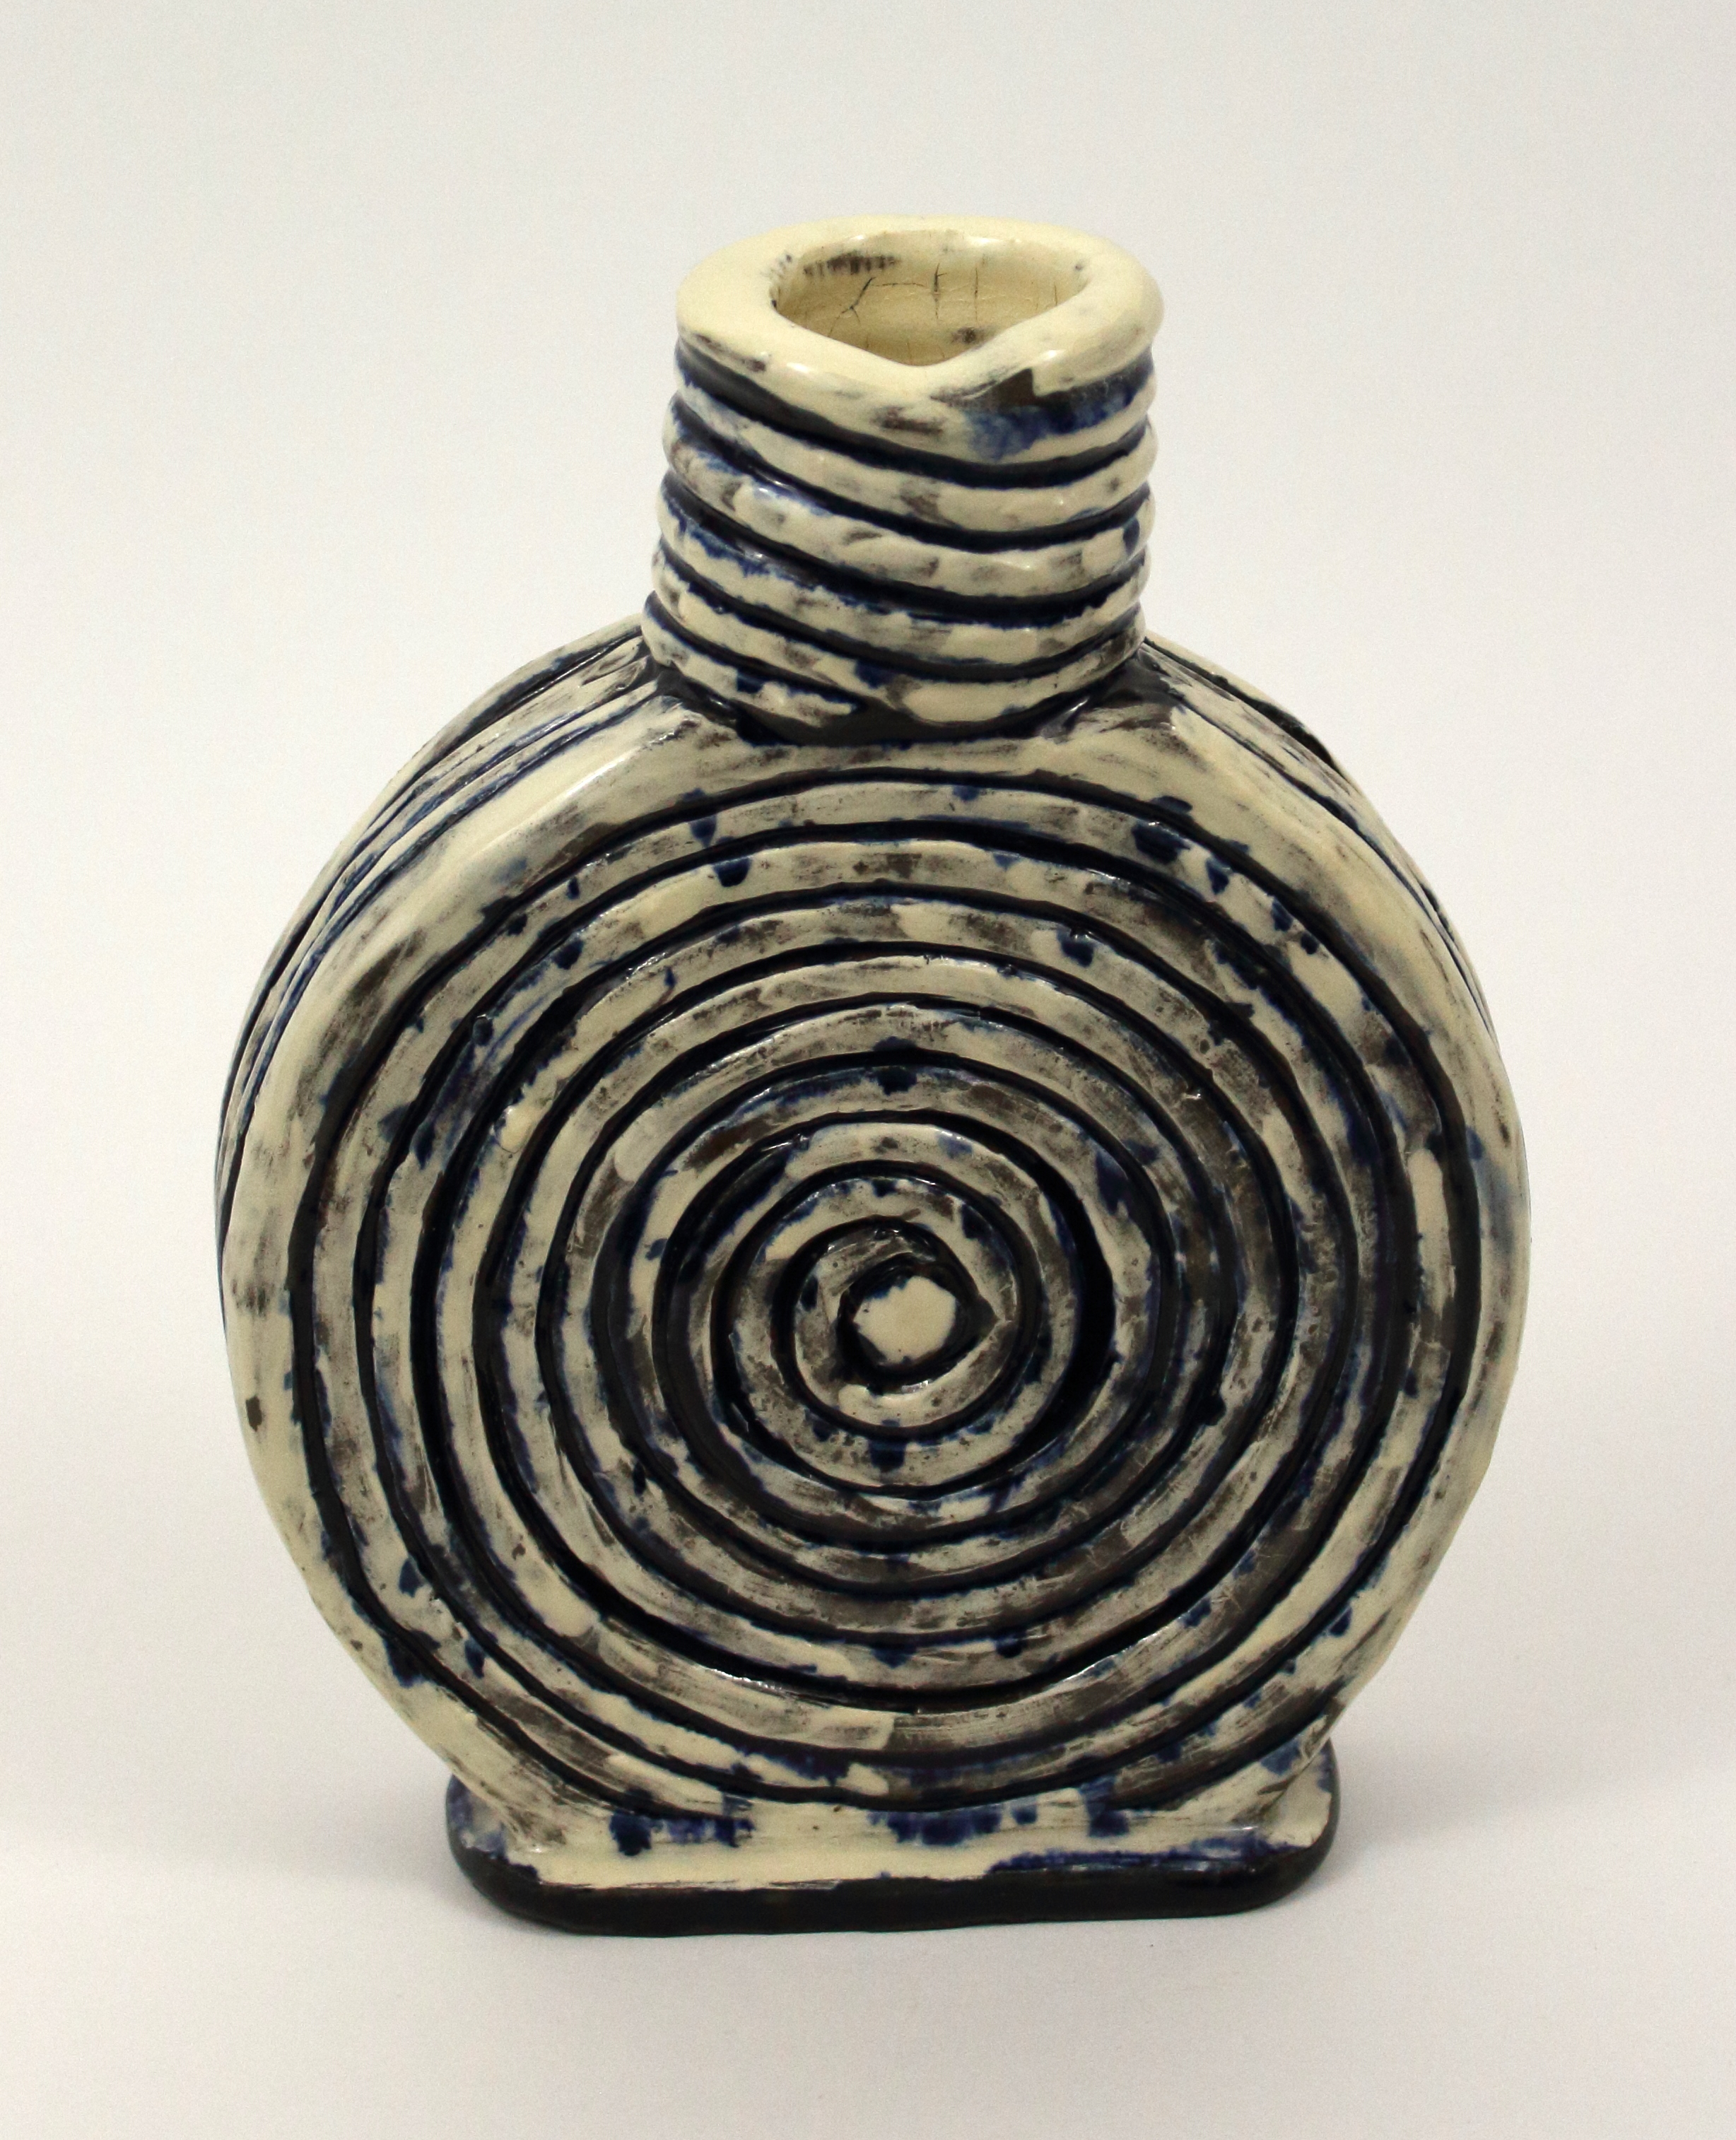 "Small Vase   Stoneware, slip, wash, and glaze  8"" x 6 1/2"" x 1 1/2""  $120  Click image to enlarge   Inquire."